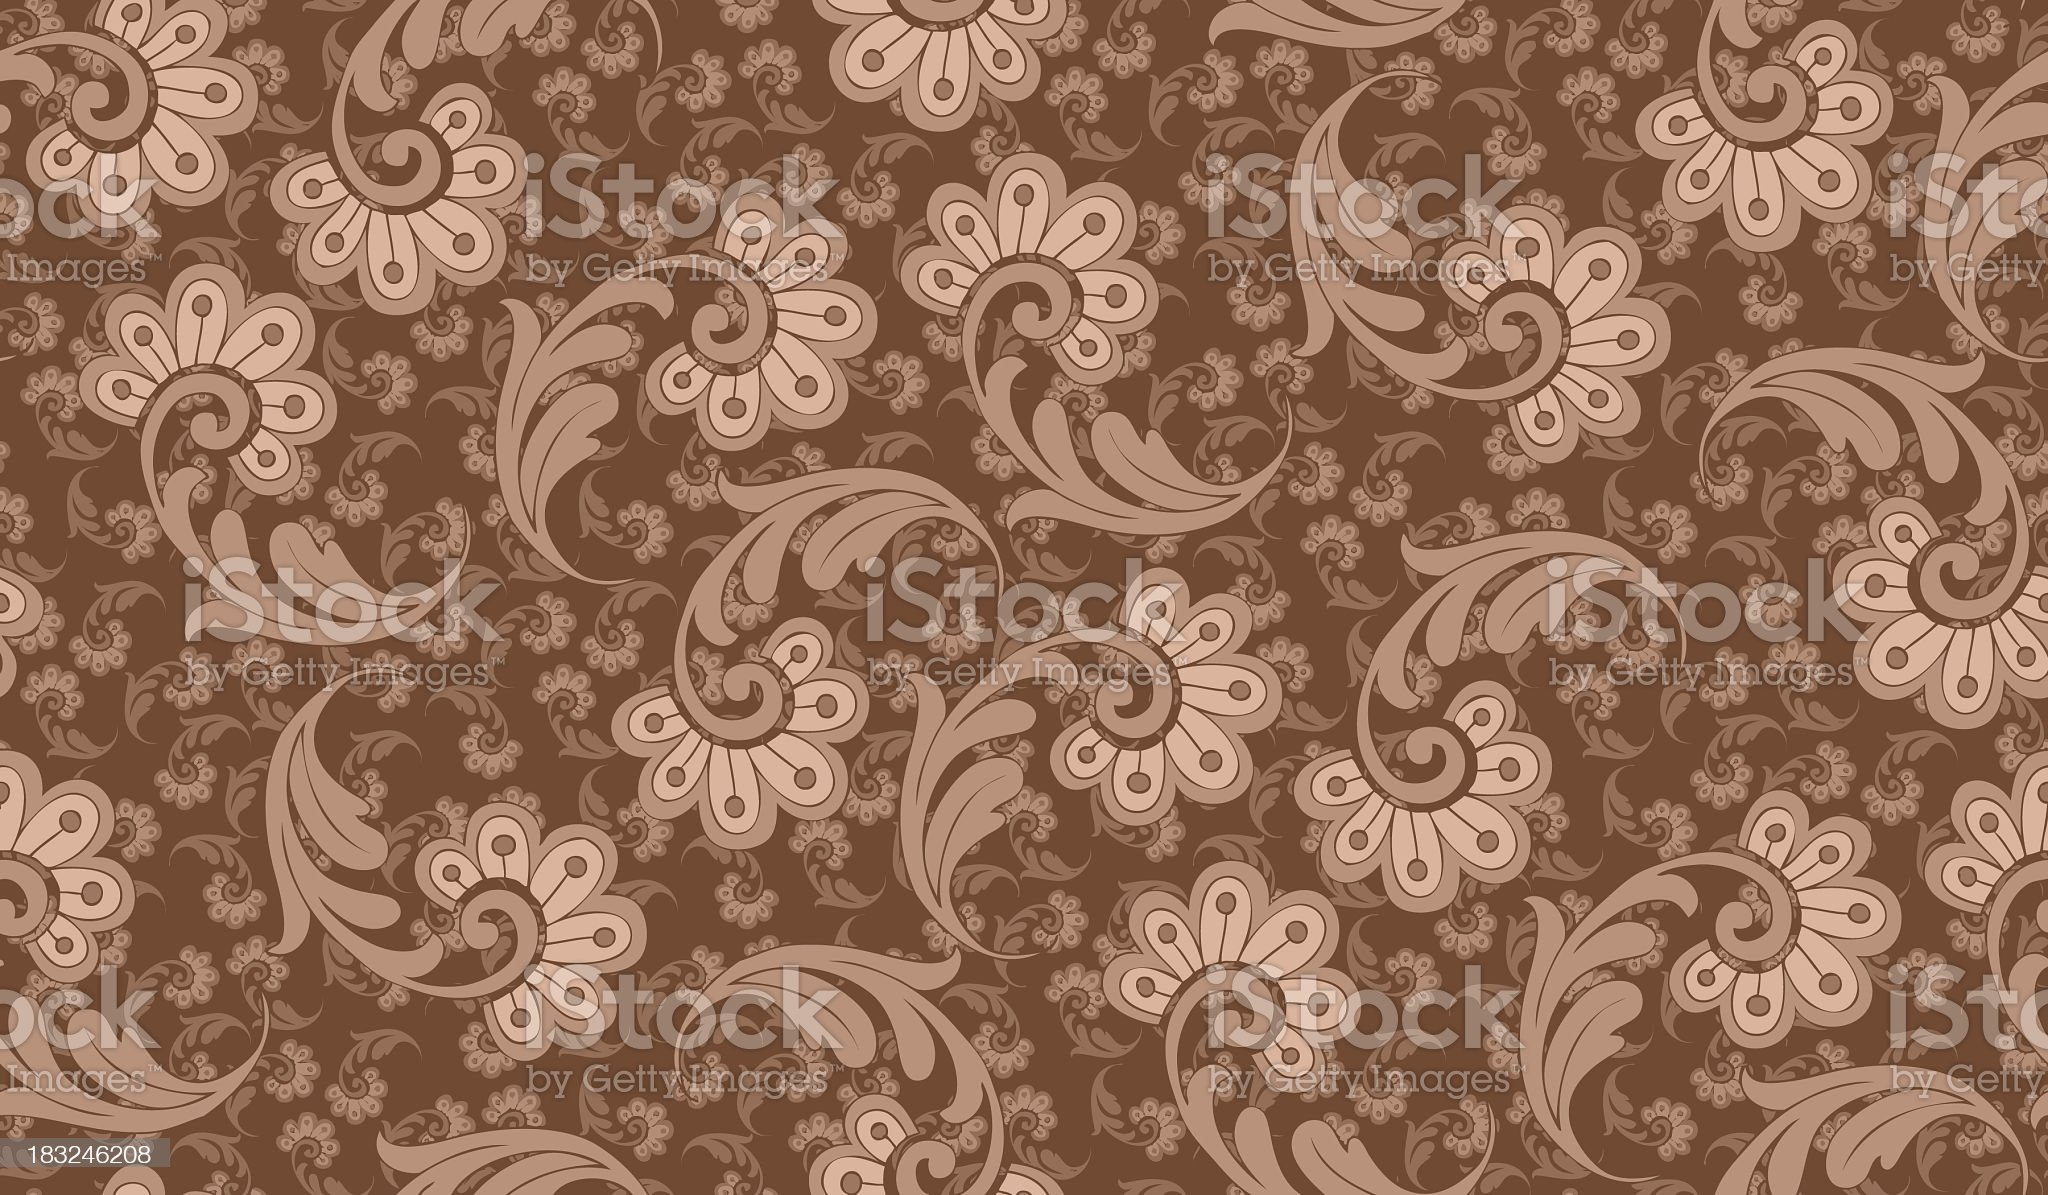 Seamlessly repeating wallpaper pattern royalty-free stock vector art